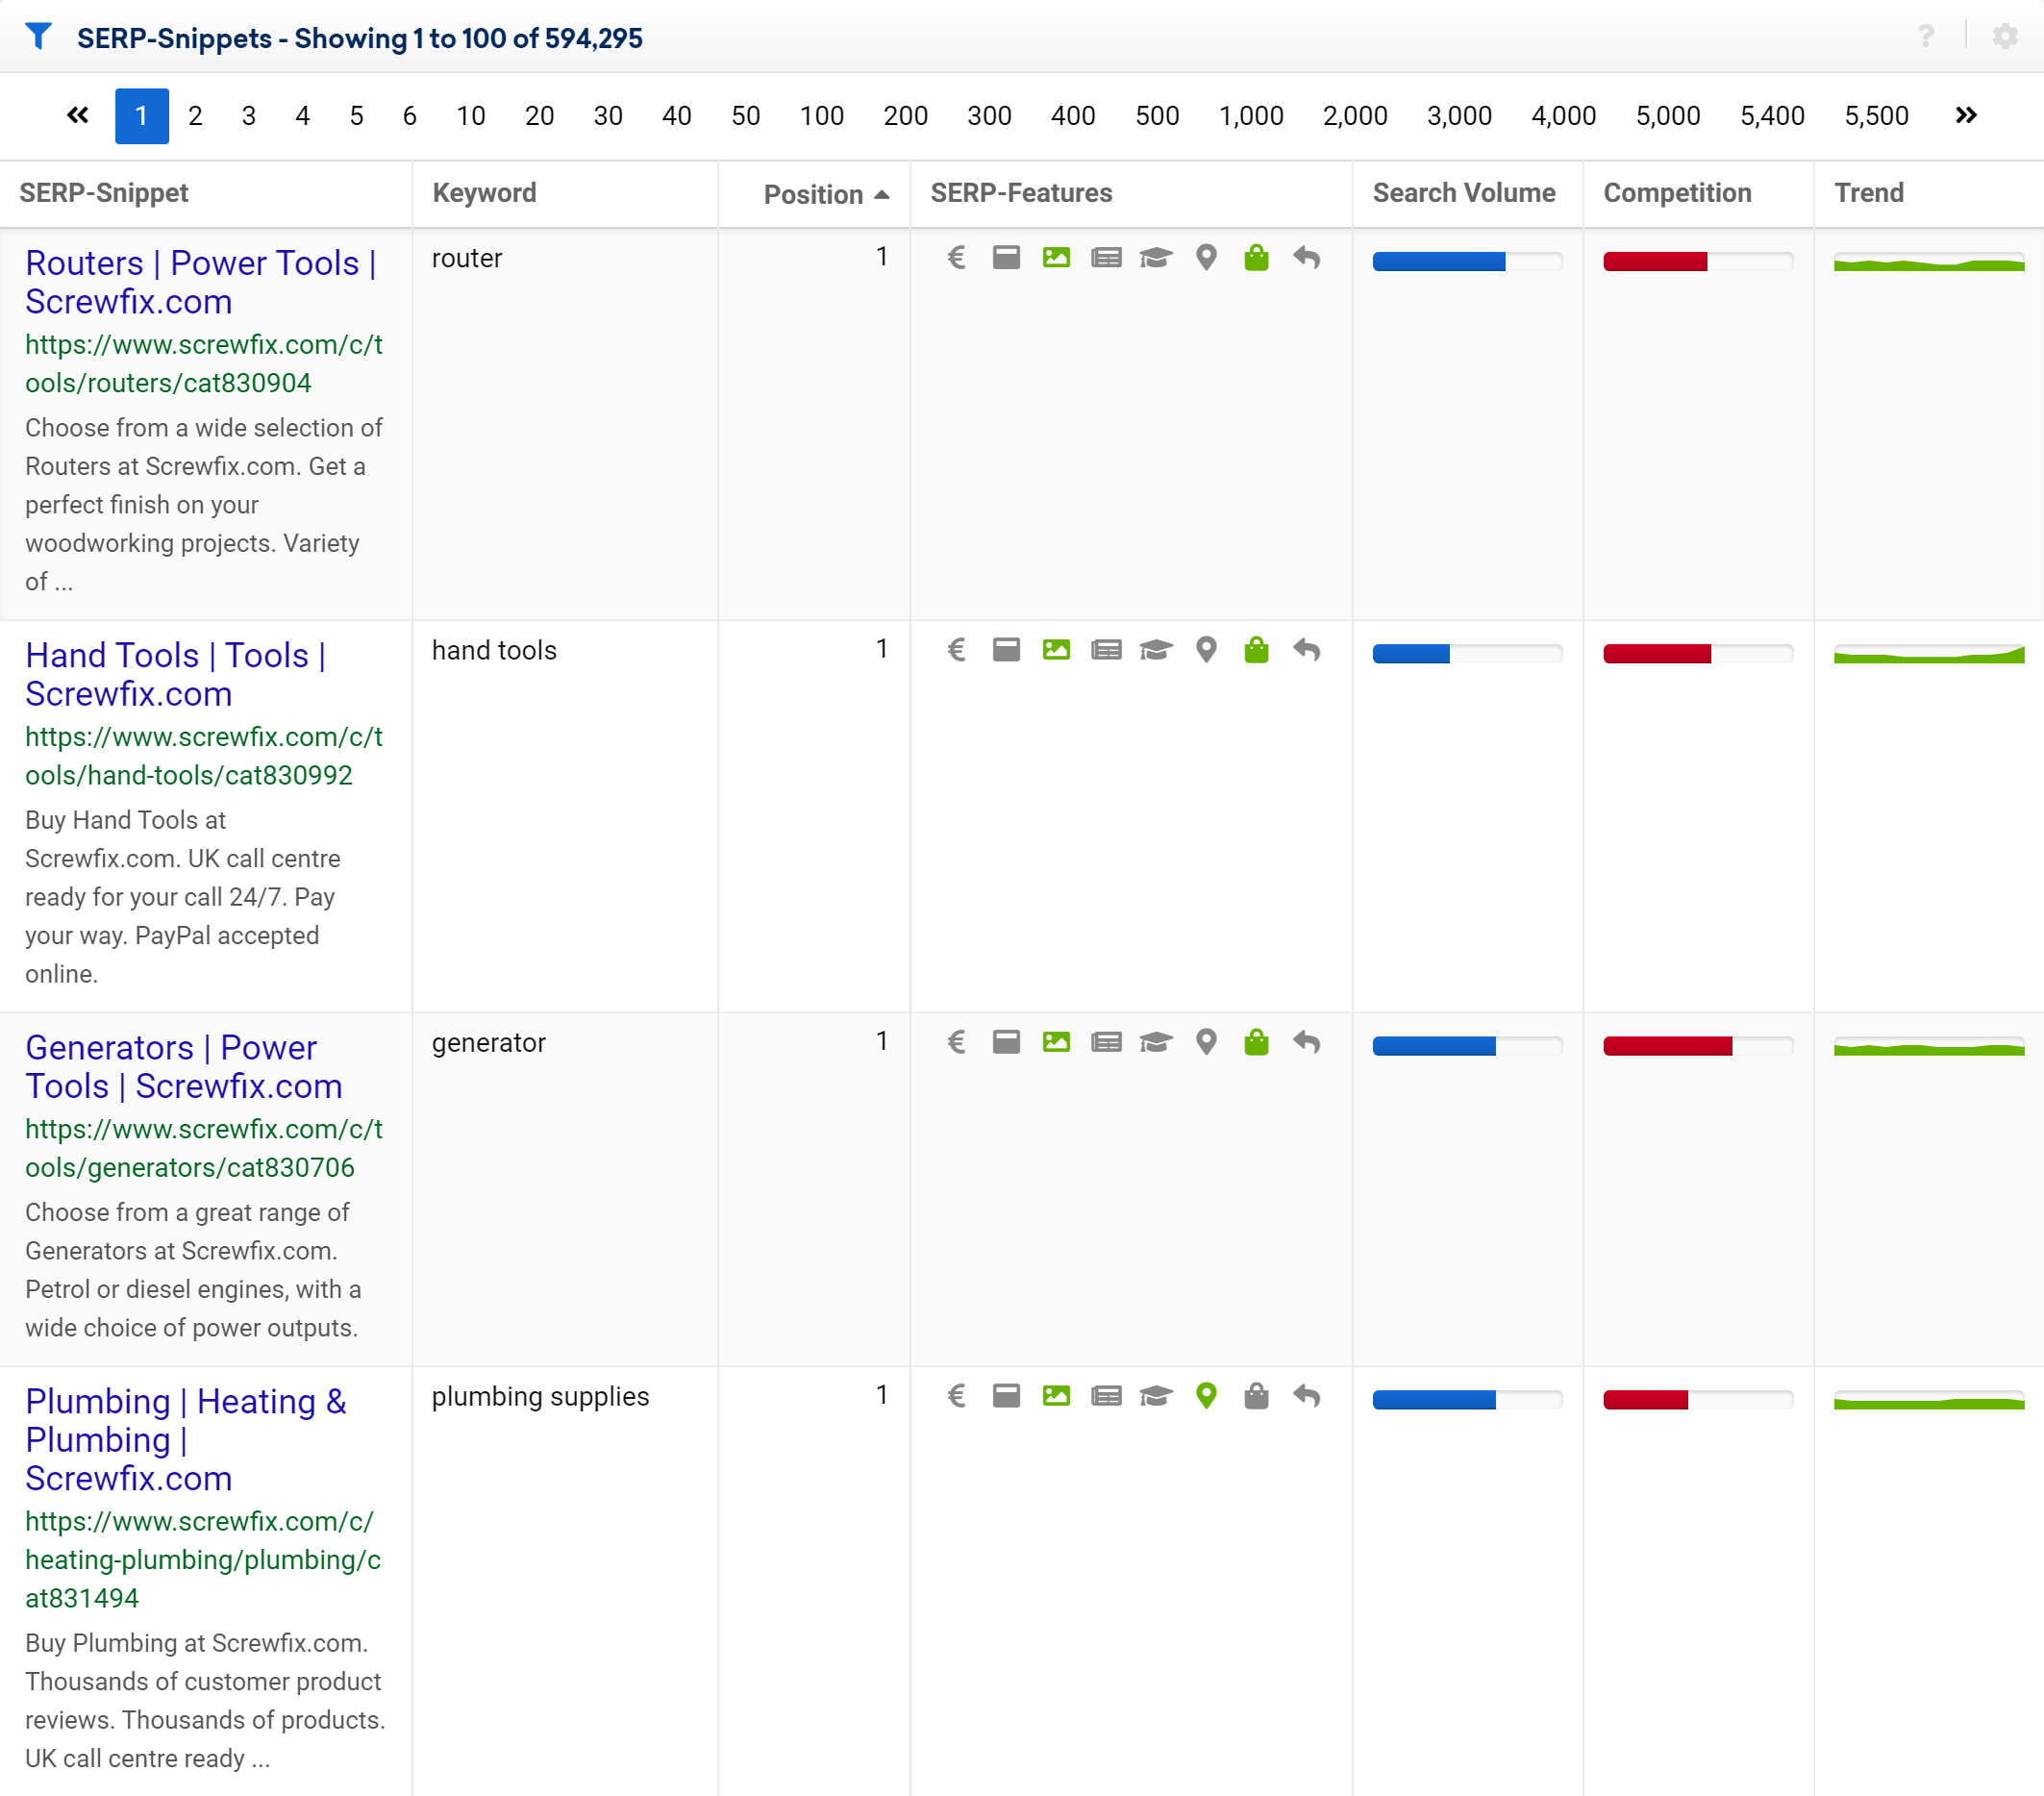 The SERP-Snippets table for the domain screwfix.com in the SISTRIX Toolbox